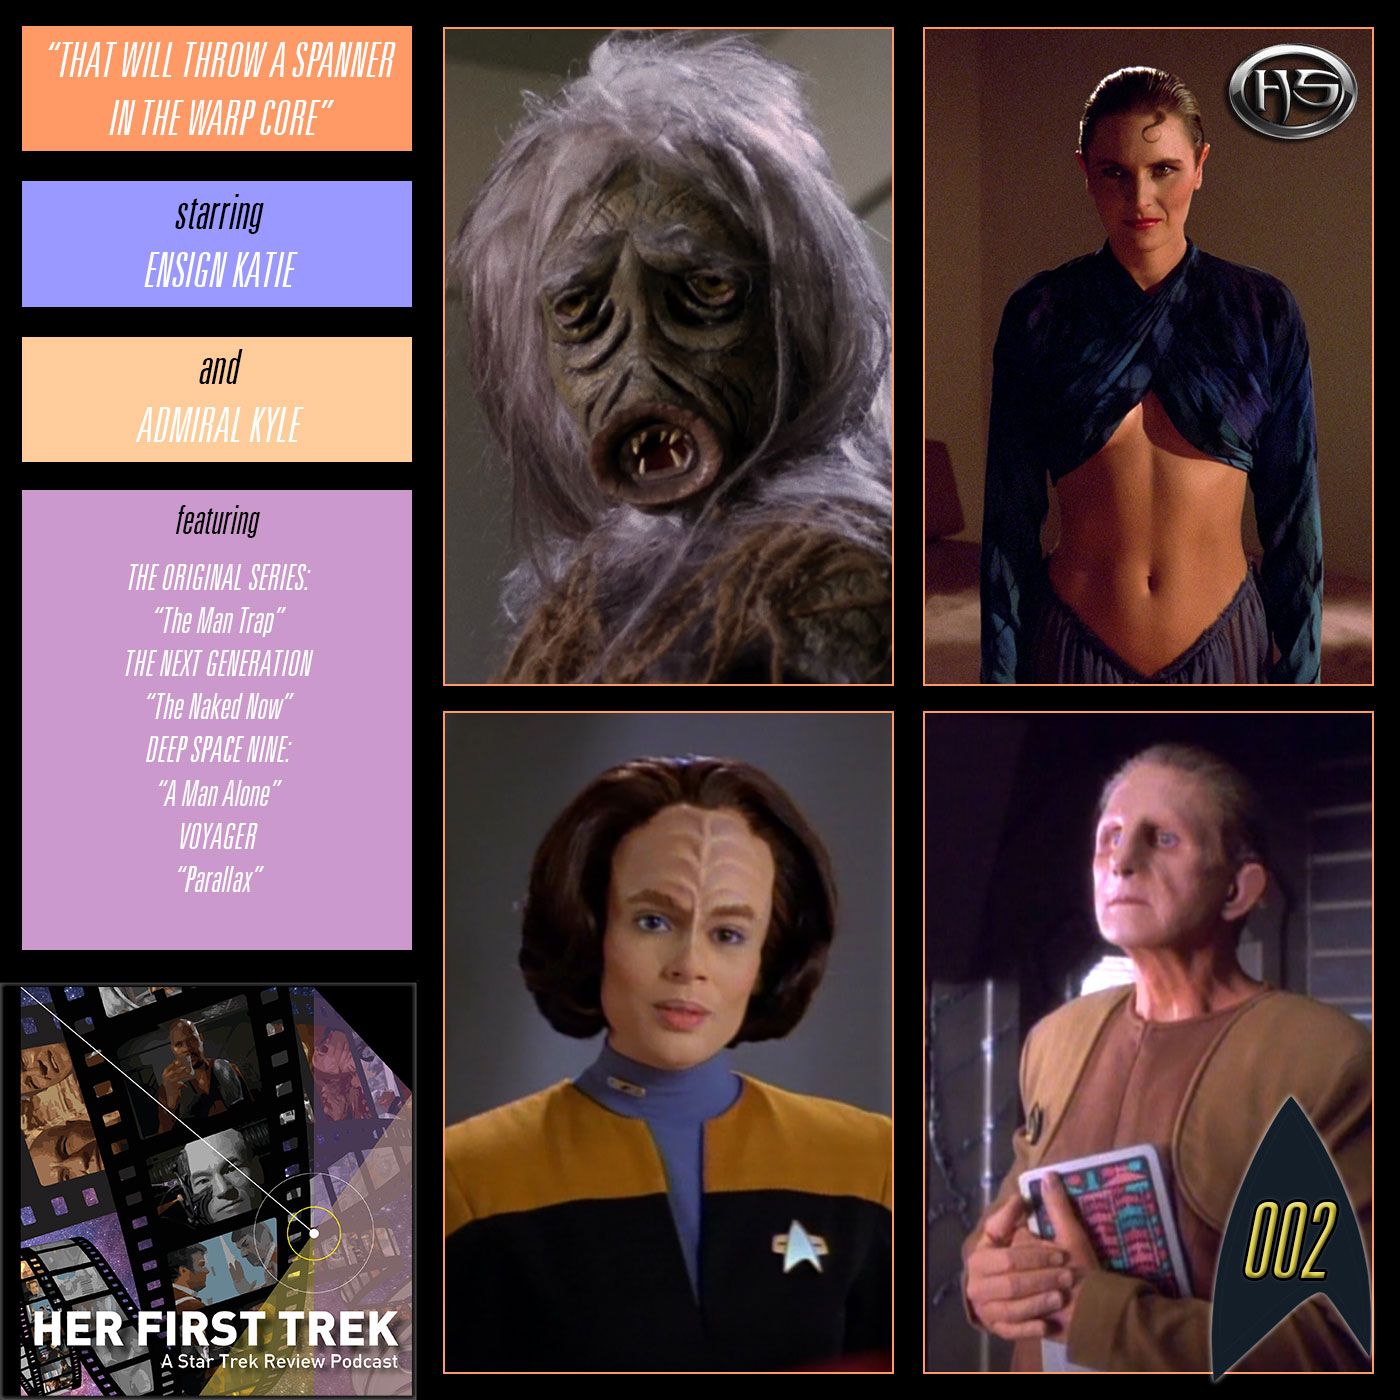 Her First Trek Episode 2